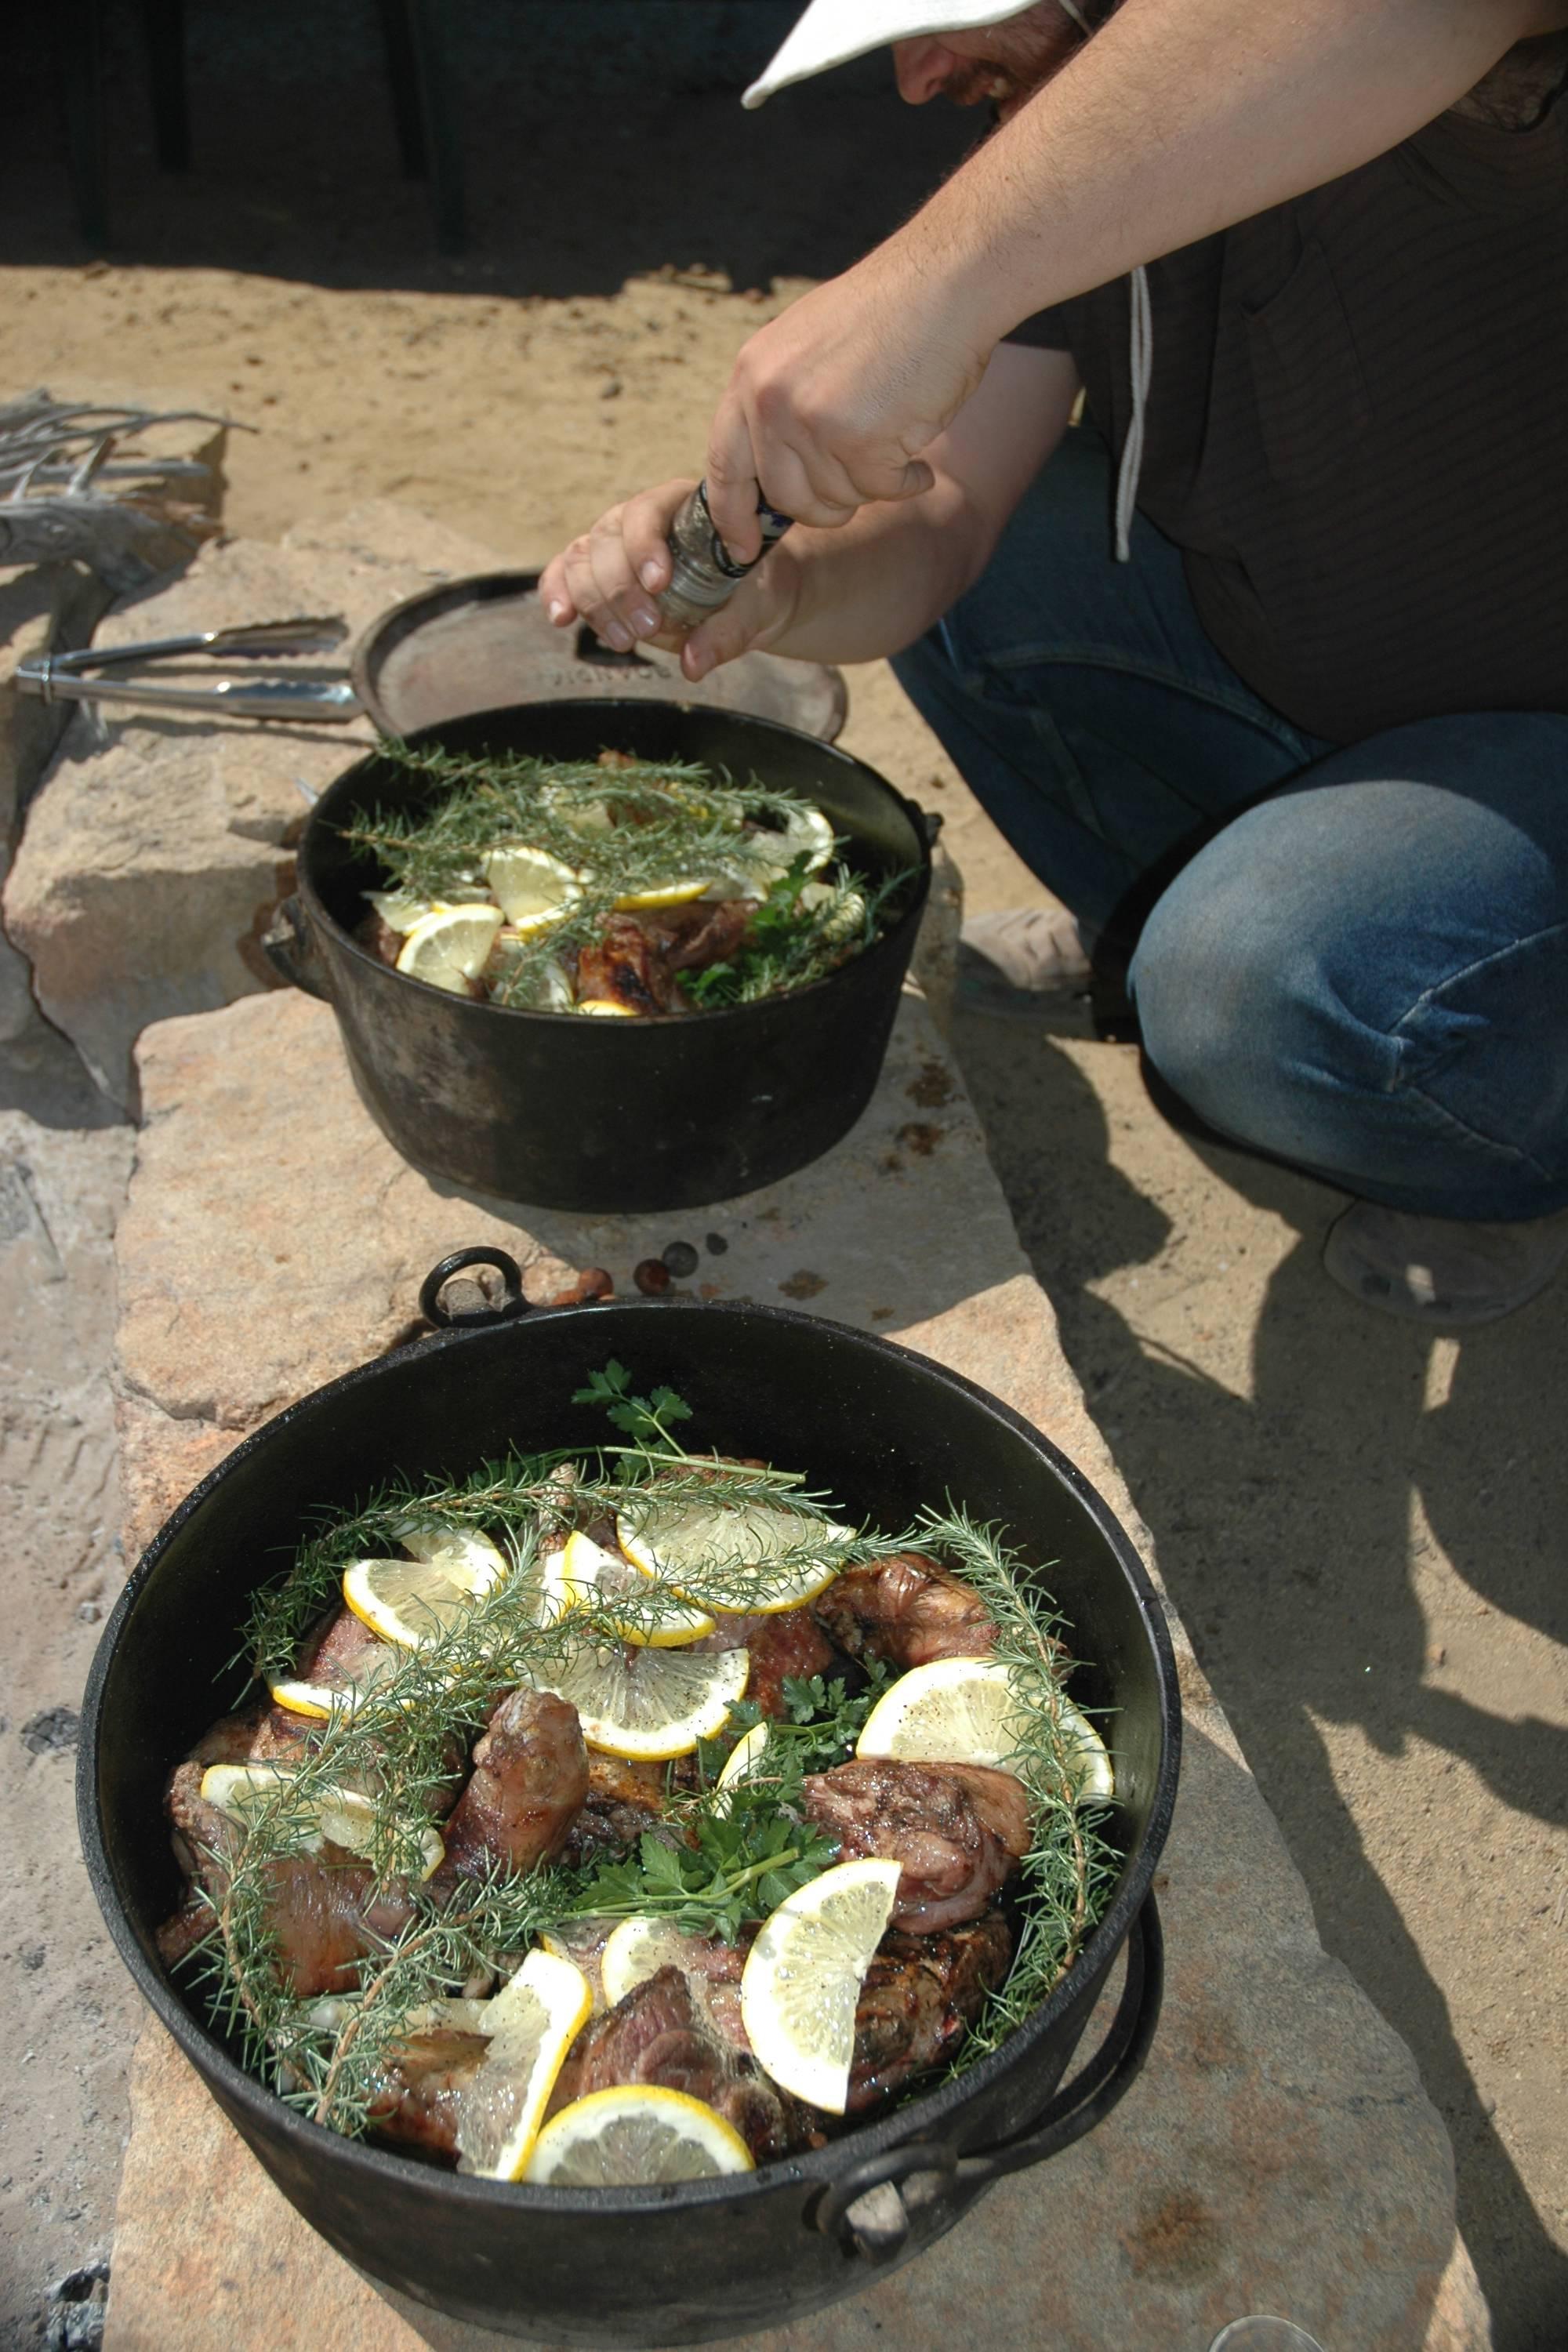 You may enjoy the flavors and textures of slow- cooked camp fire cooking.